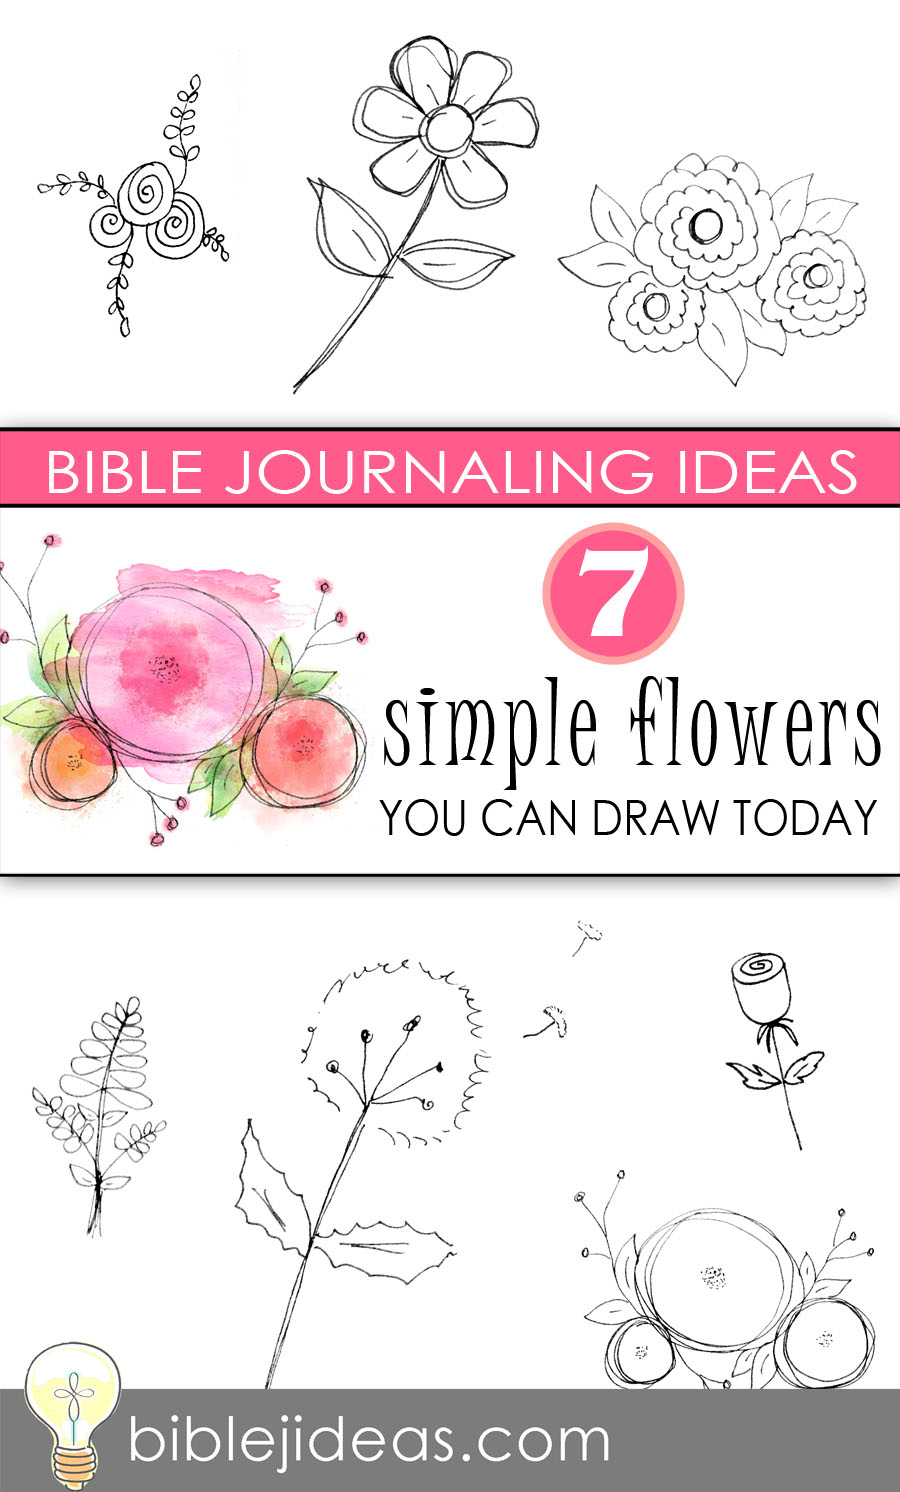 Bible Journaling Ideas 7 Simple Flowers You Can Draw Today